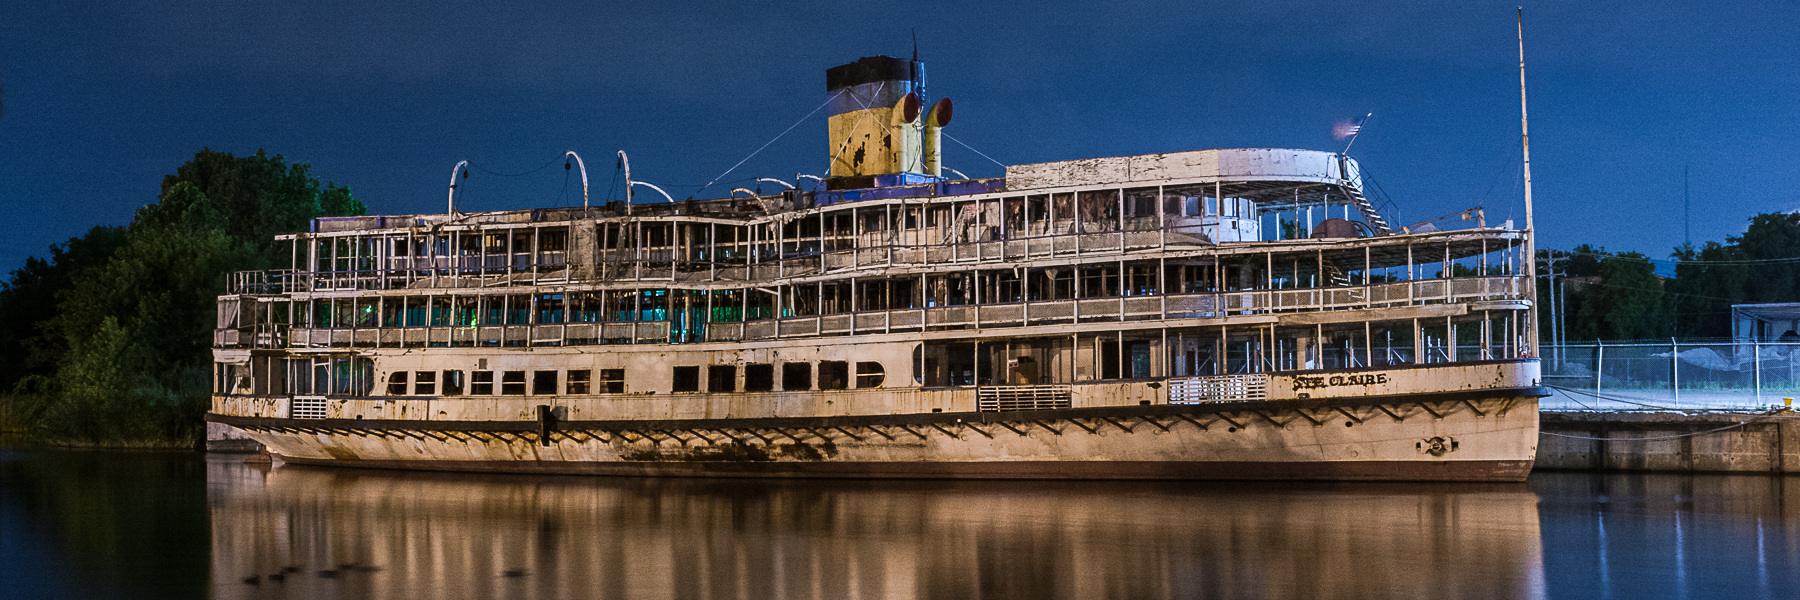 Detroit Ste. Claire Nocturne - Bob-Lo steamer Ste. Claire rests at her berth on the Rouge River.